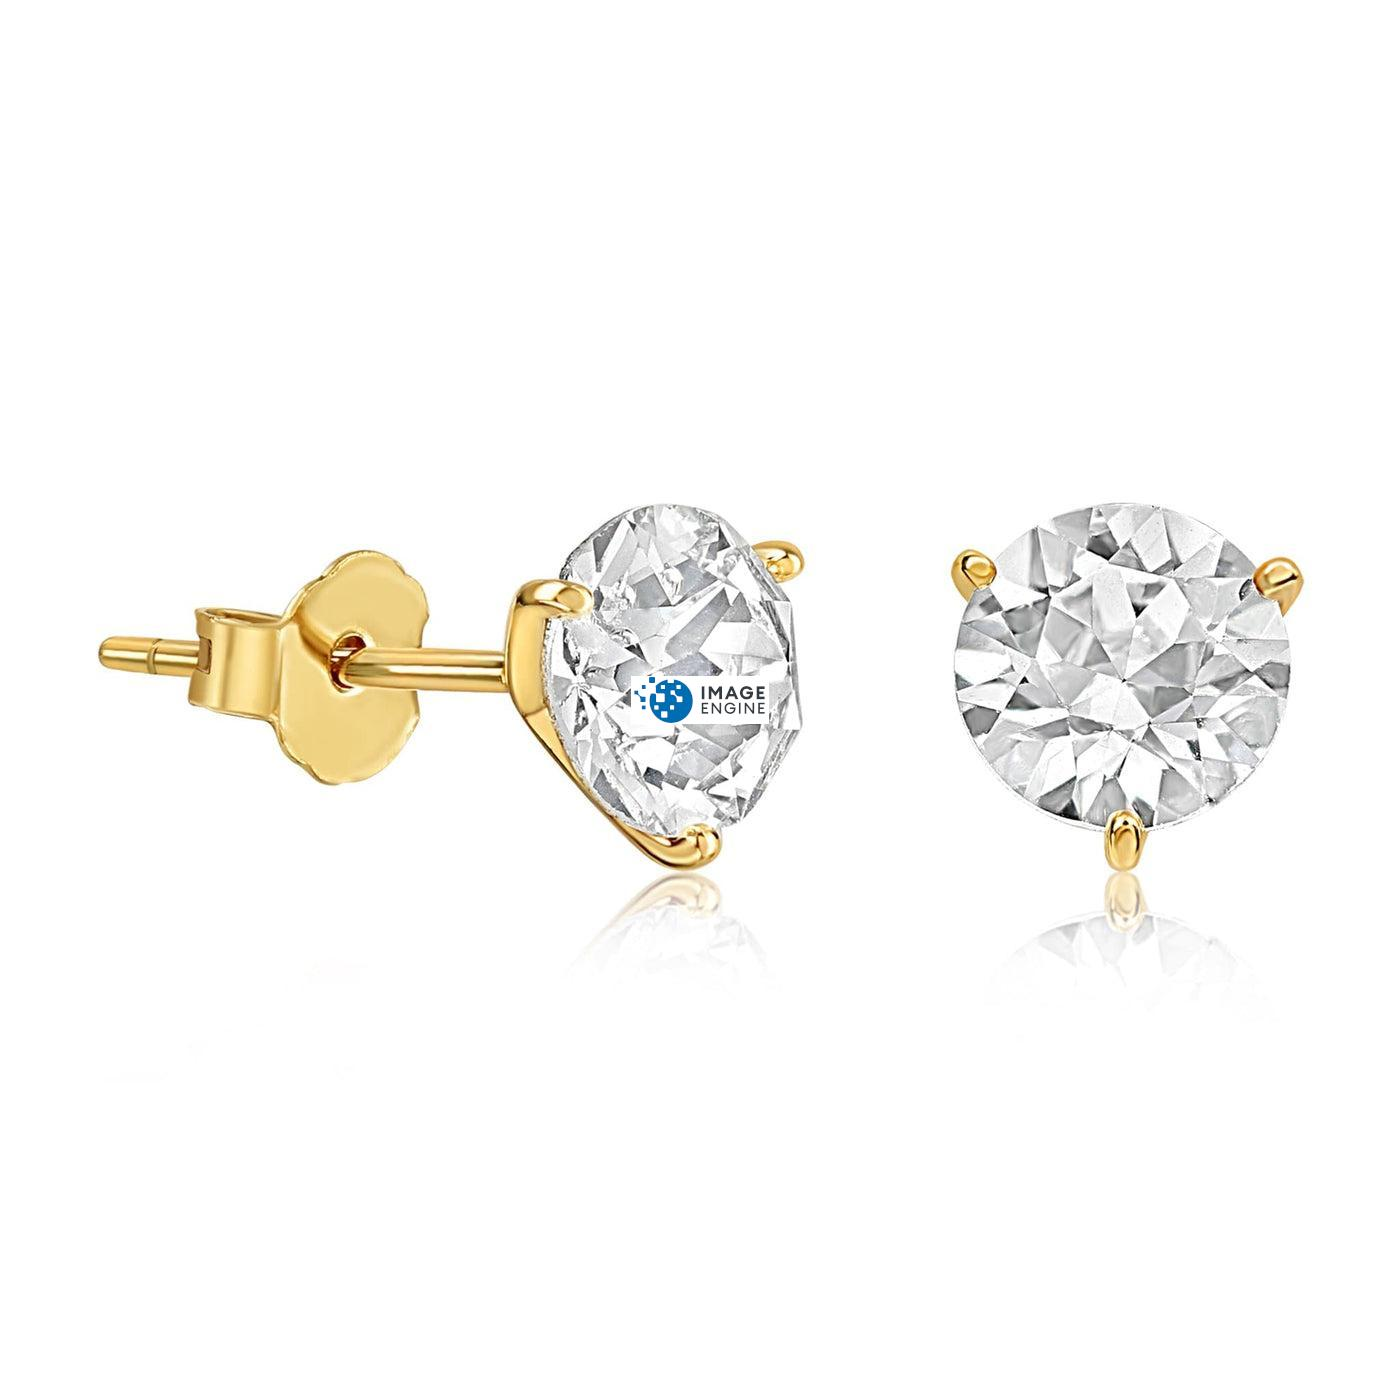 Swarovski Stud Earrings - Facing to the Right - 18K Yellow Gold Vermeil